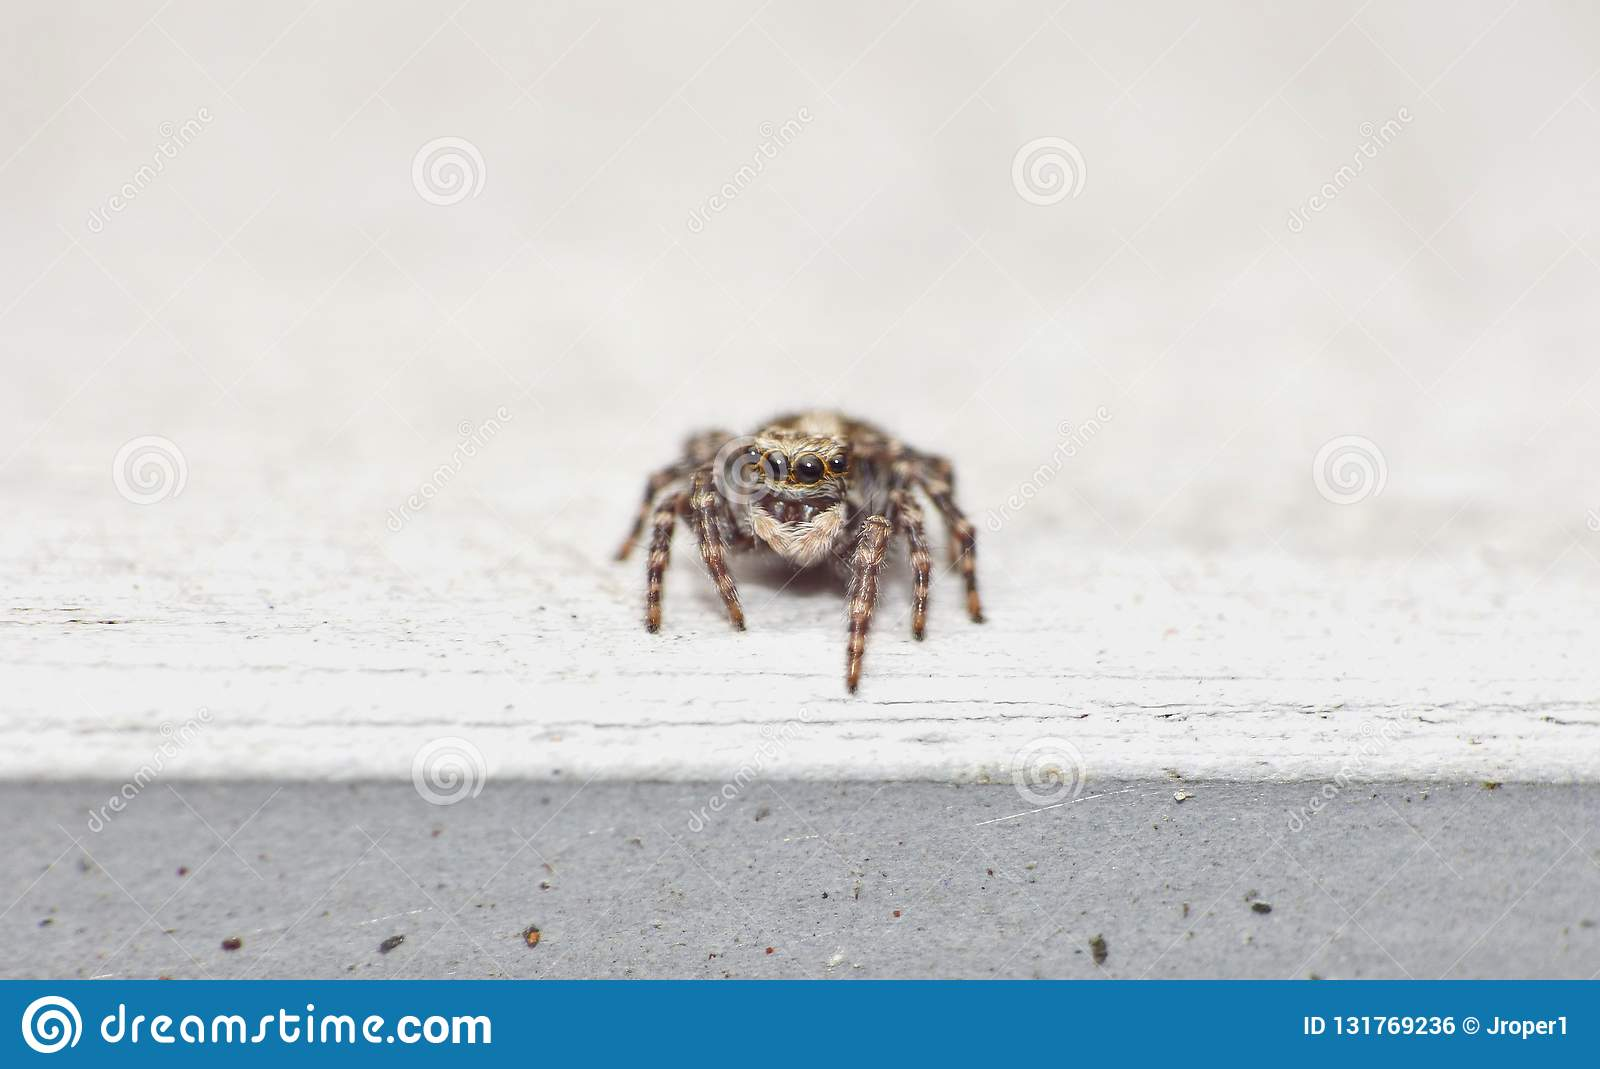 Macro photography of a jumping spider, photo taken in the UK